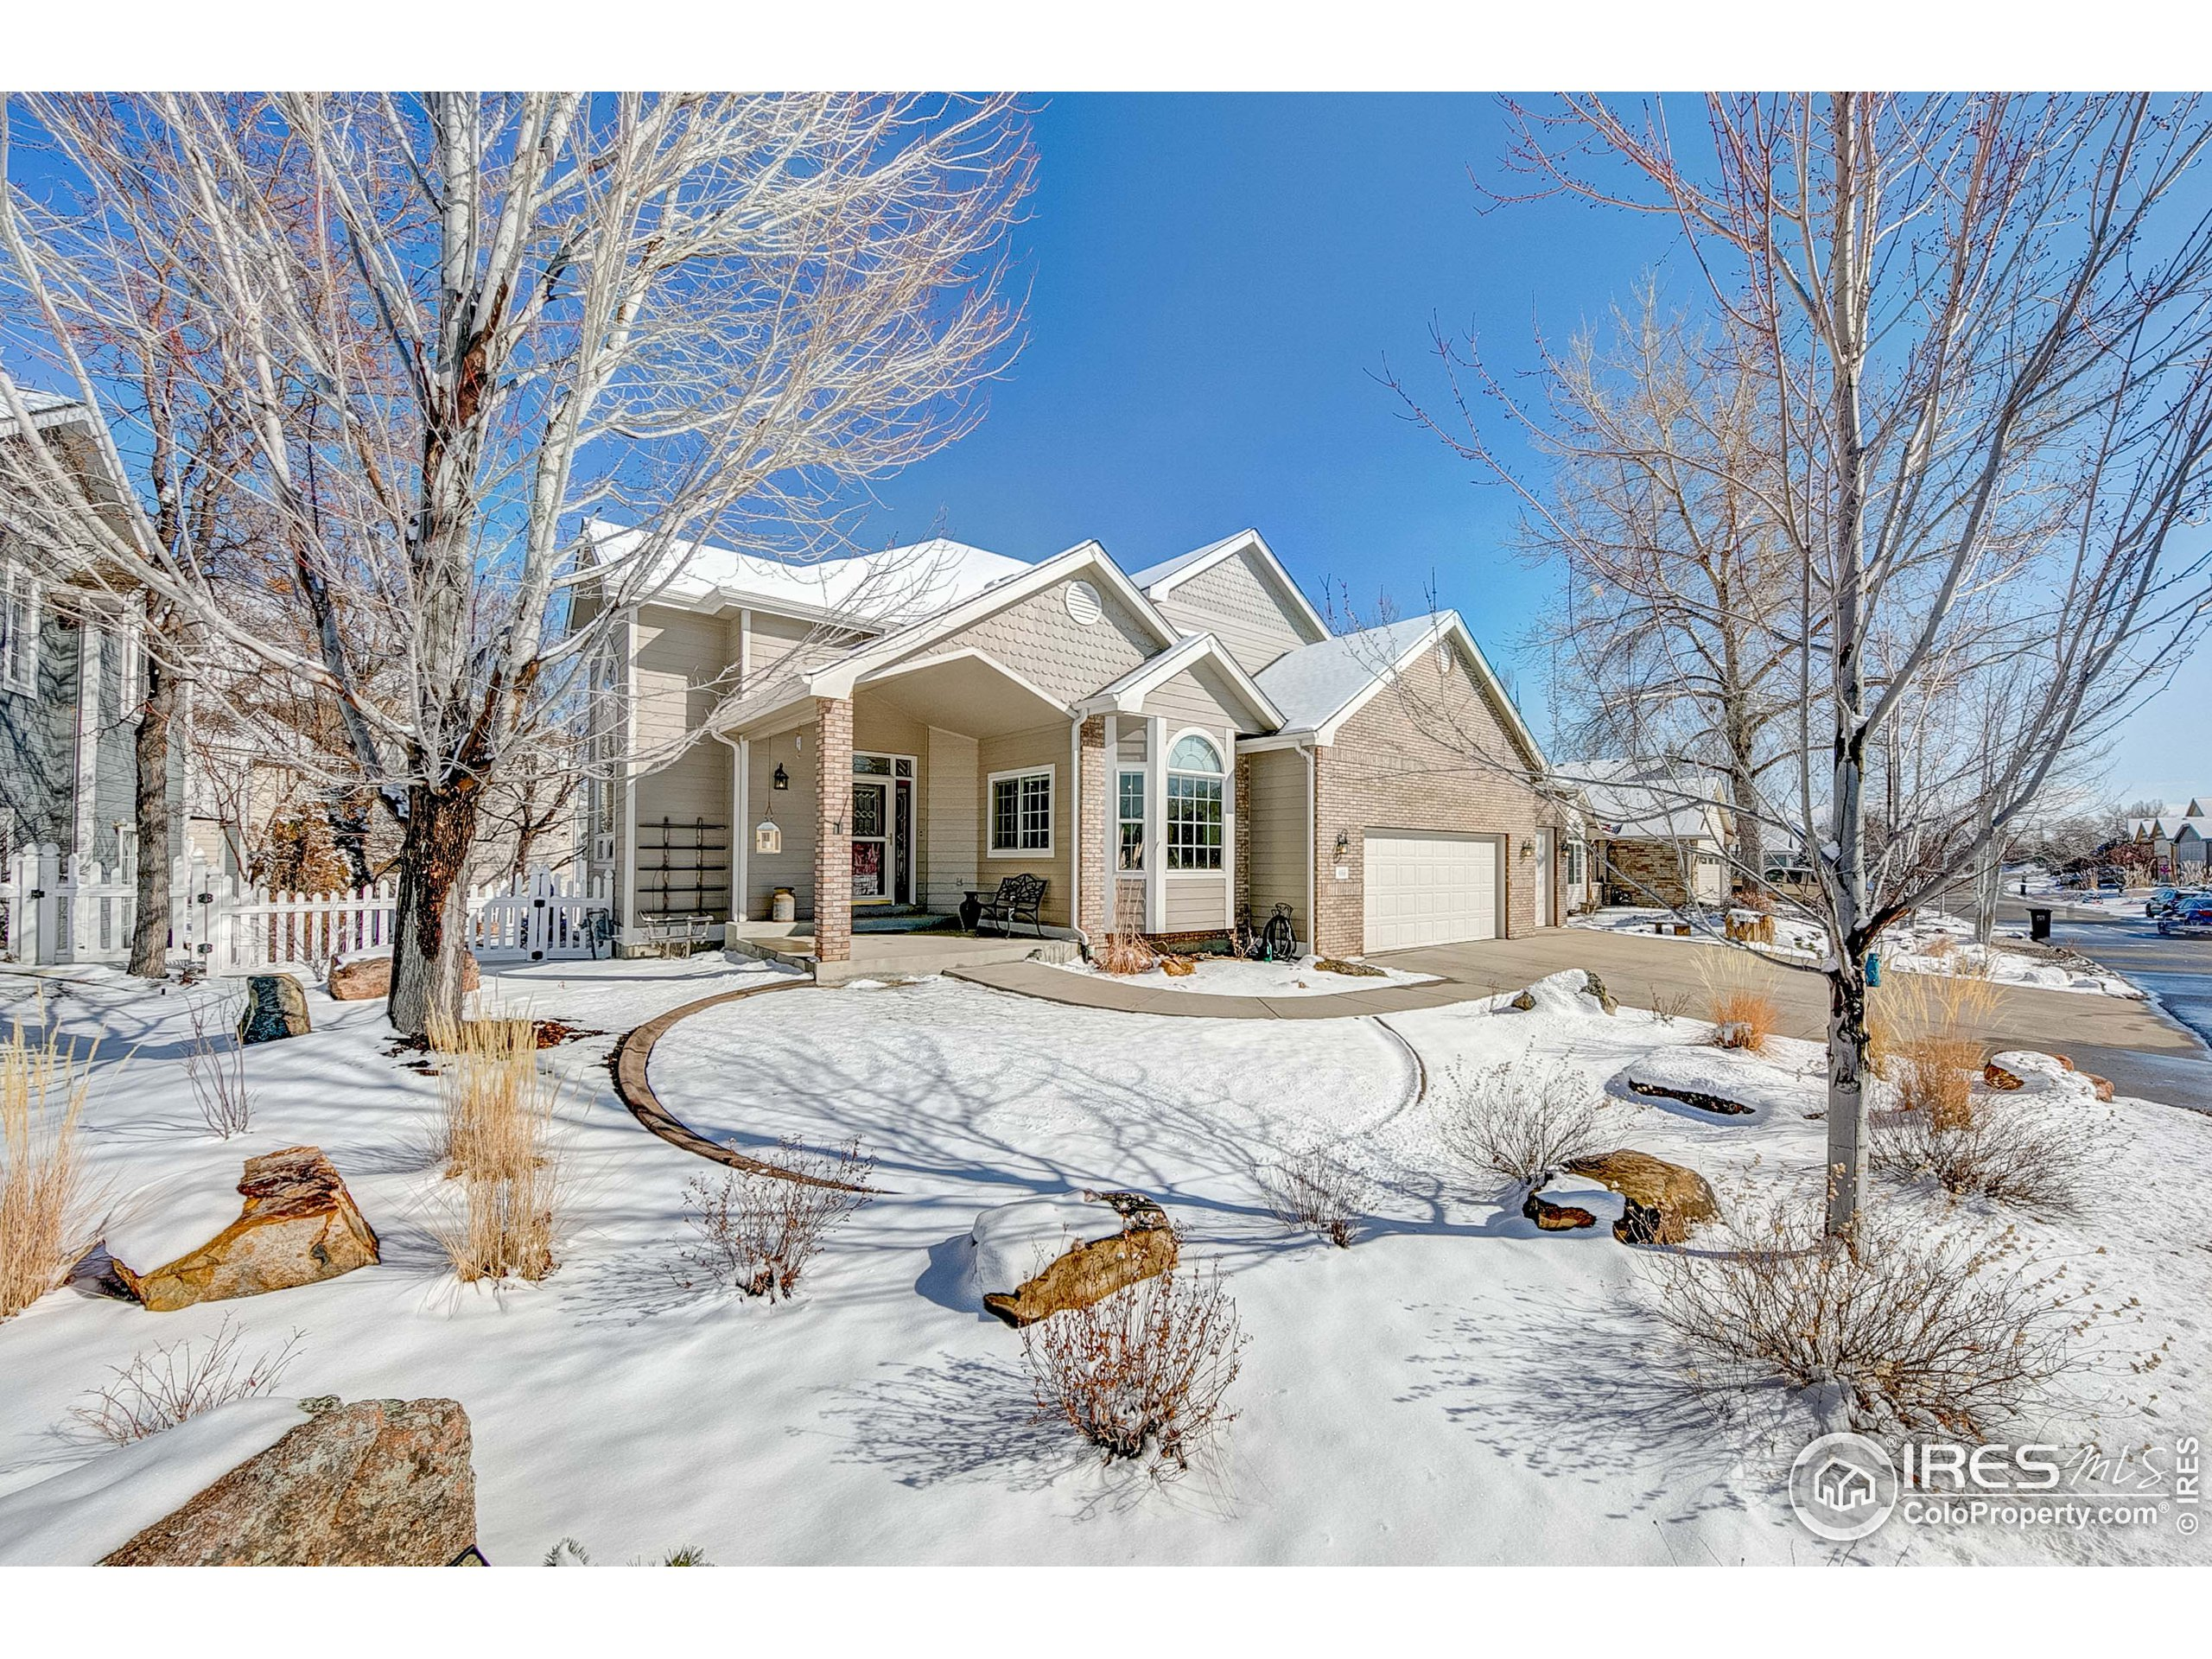 We have to say... this little neighborhood (Mariana Cove) nestled in the southwest corner of Loveland near the foothills and access to Boedecker Lake is a GEM! Enjoy open space right out your front door, walking trails & covented lake access. Main floor owners' suite with private deck, 5 piece master bath and large walk in closet. Light and bright throughout, bringing nature indoors. Soaring ceilings with open staircase to the 2nd level to 3 large bedrooms and 2 baths. The walkout basement is fully finished with an outside entrance to a private office space. Large family room, bar area, bedroom, bathroom and lots of storage. There is room for everything in this extra large 3-car heated garage. Beautifully landscaped front and back yards. Meticulously cared for, pre-inspected for peace of mind.